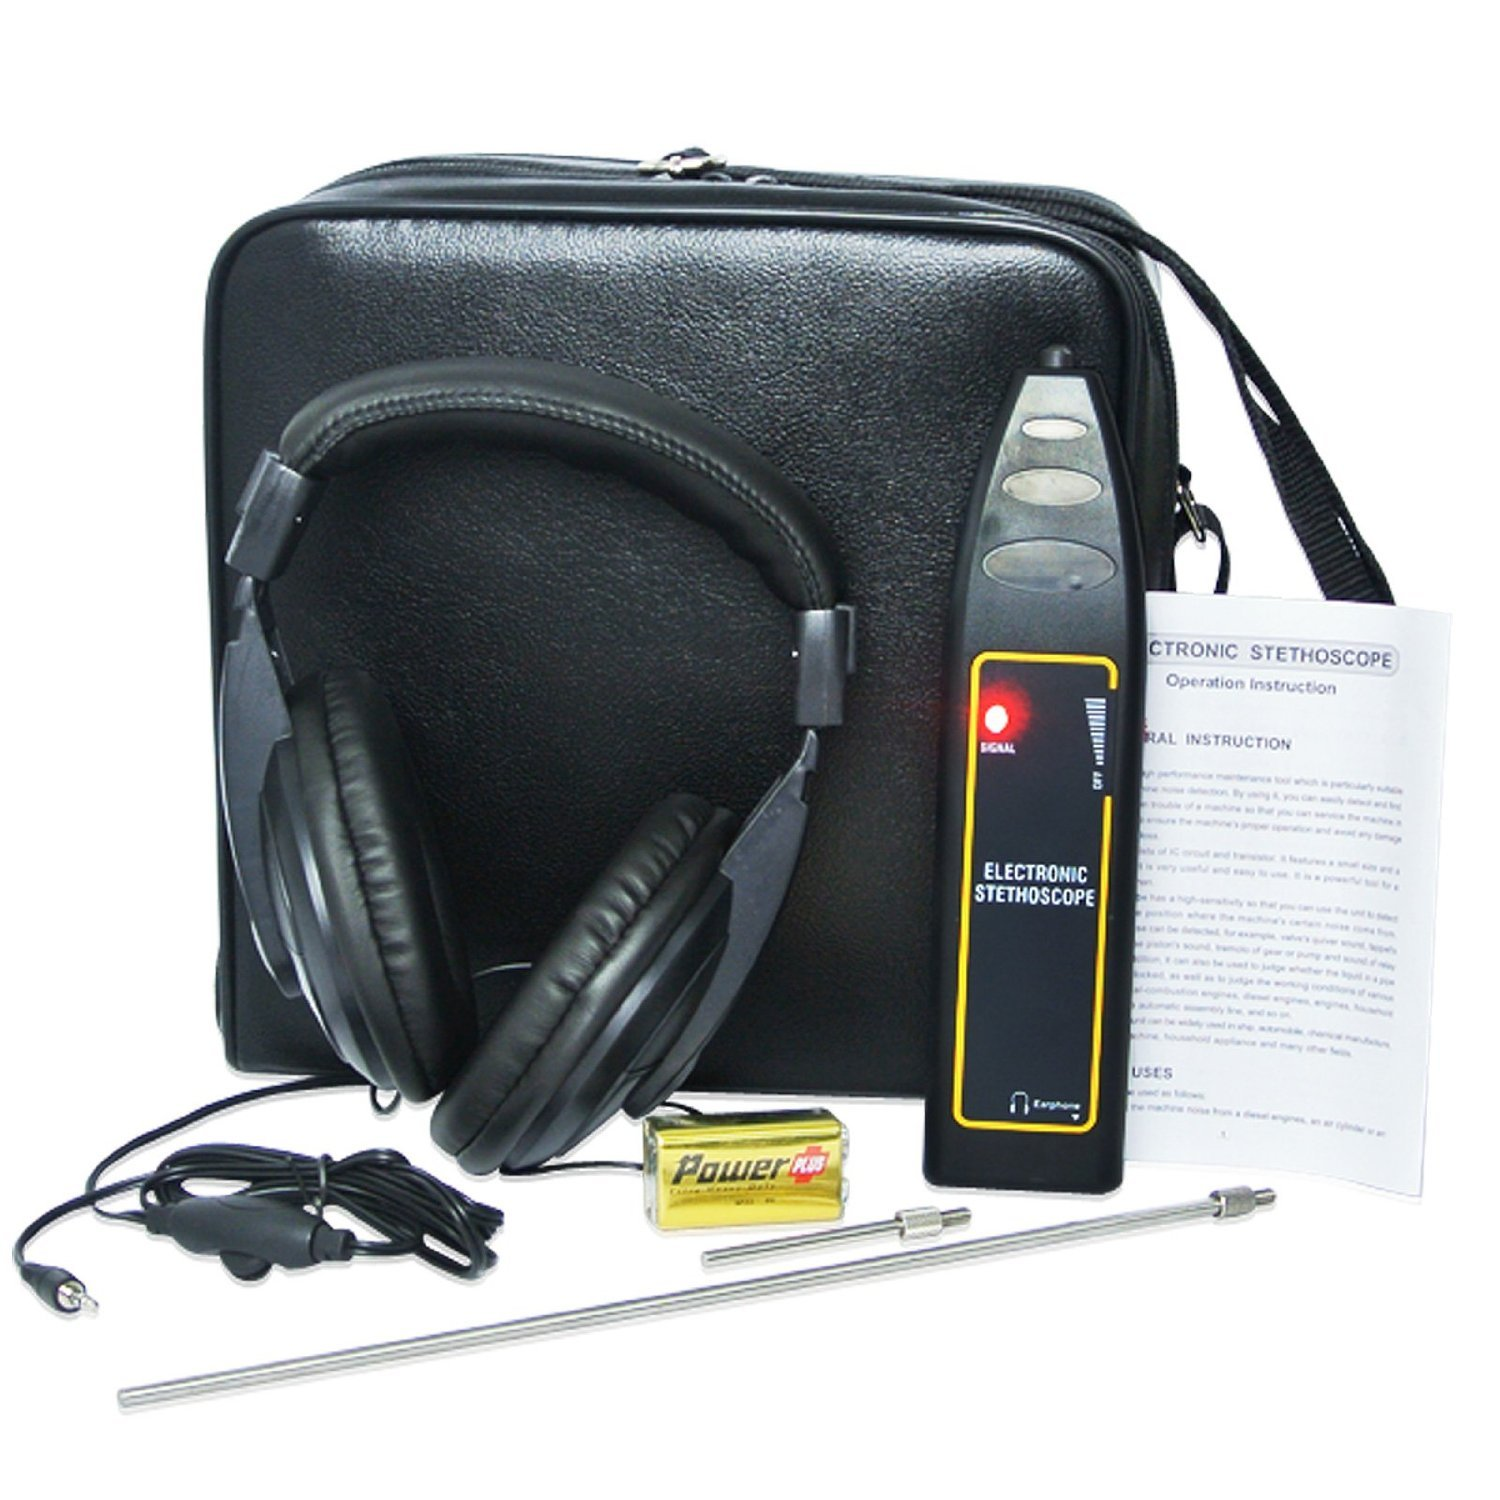 Autos Noise Finder Detector Electronic Stethoscope with An Adjustable Headset OKA 4333092950